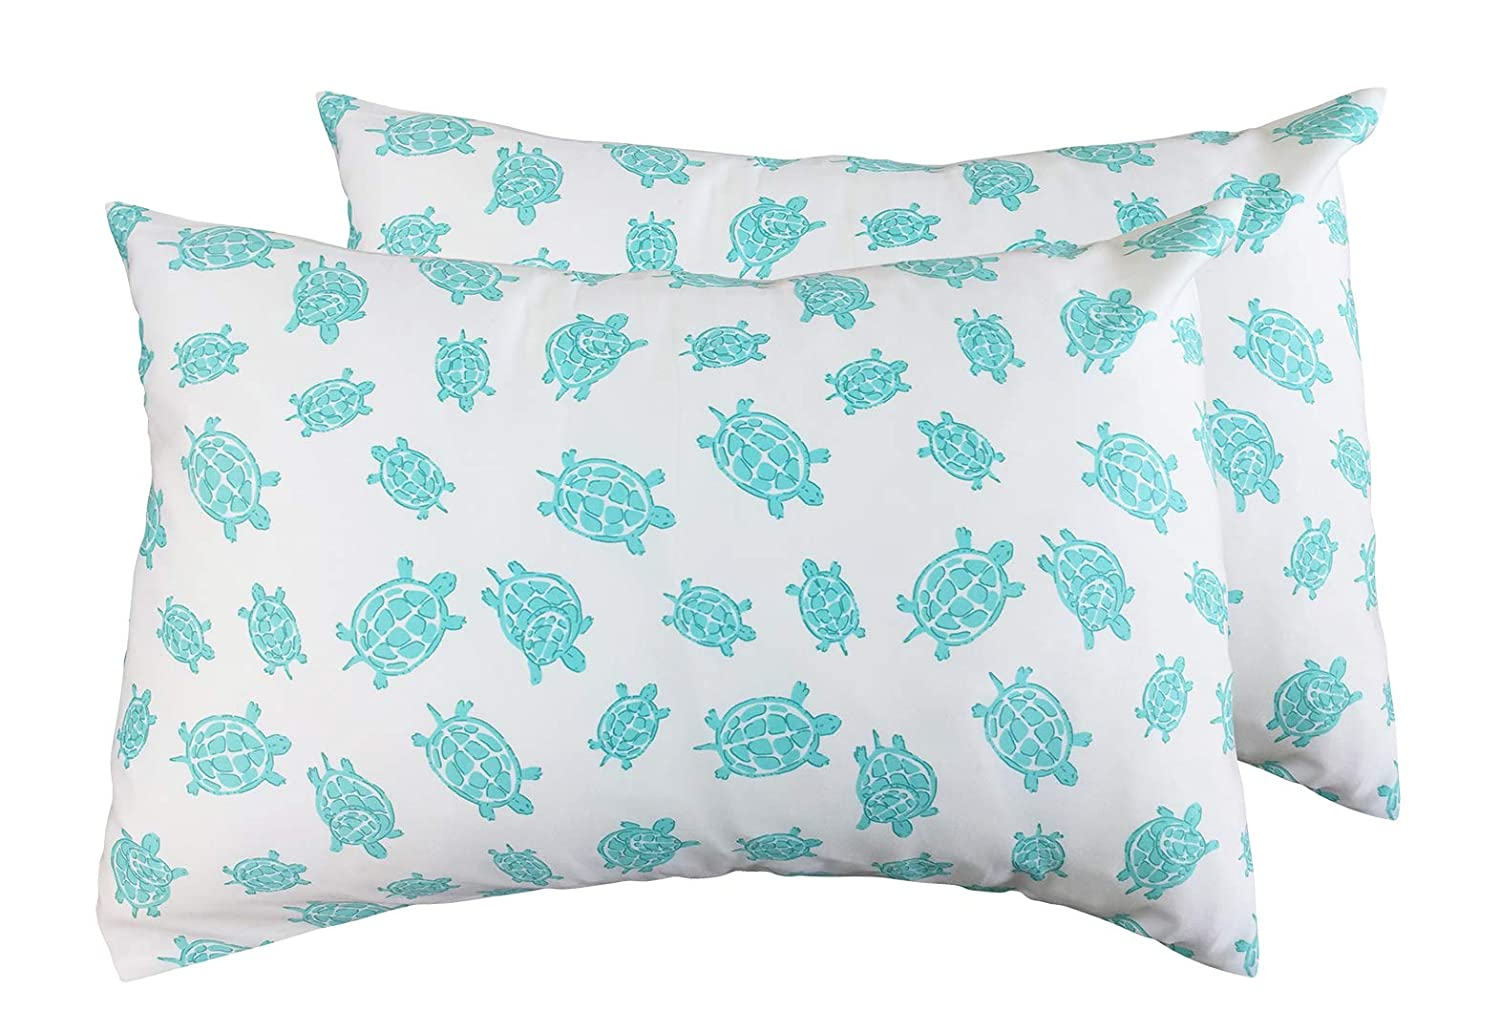 2 Toddler or Travel Pillowcases in Organic Cotton to Fit 13 x 18 and 14 x 19 Pillow, Turtle Print (Pink) Dera Design